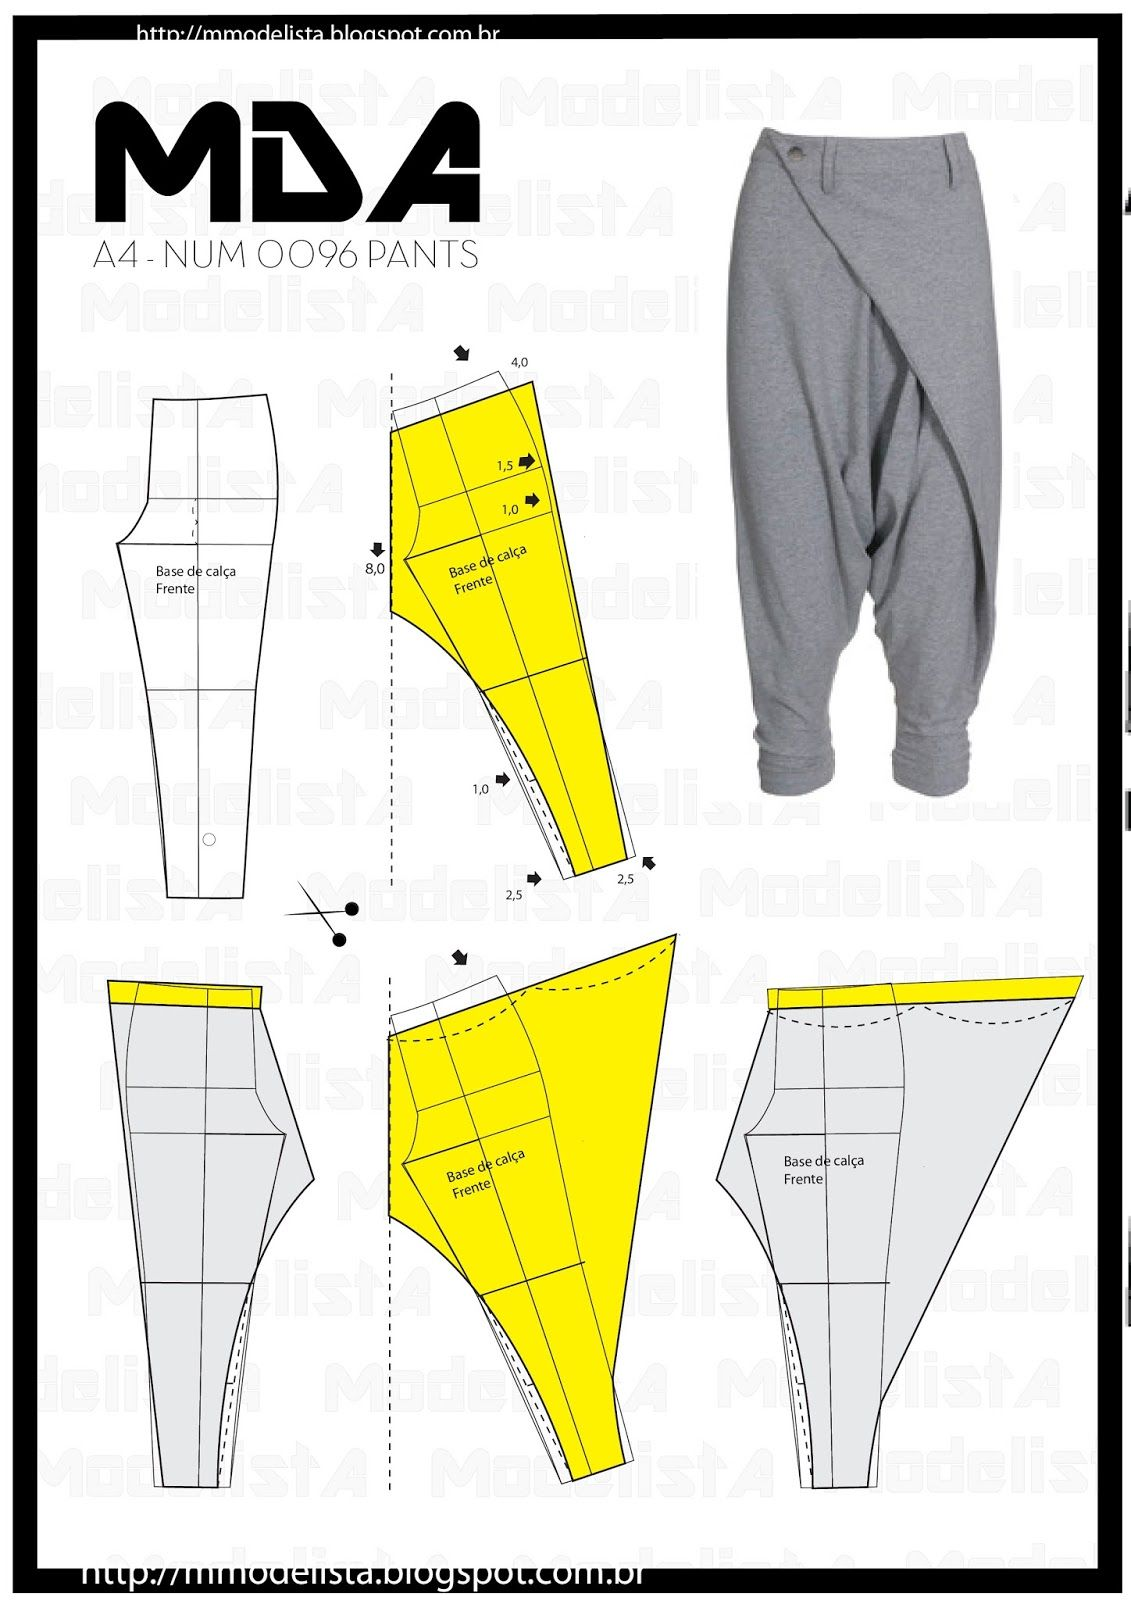 A4 NUM 0096 PANTS | Patterns | Pinterest | Sewing, Sewing patterns ...